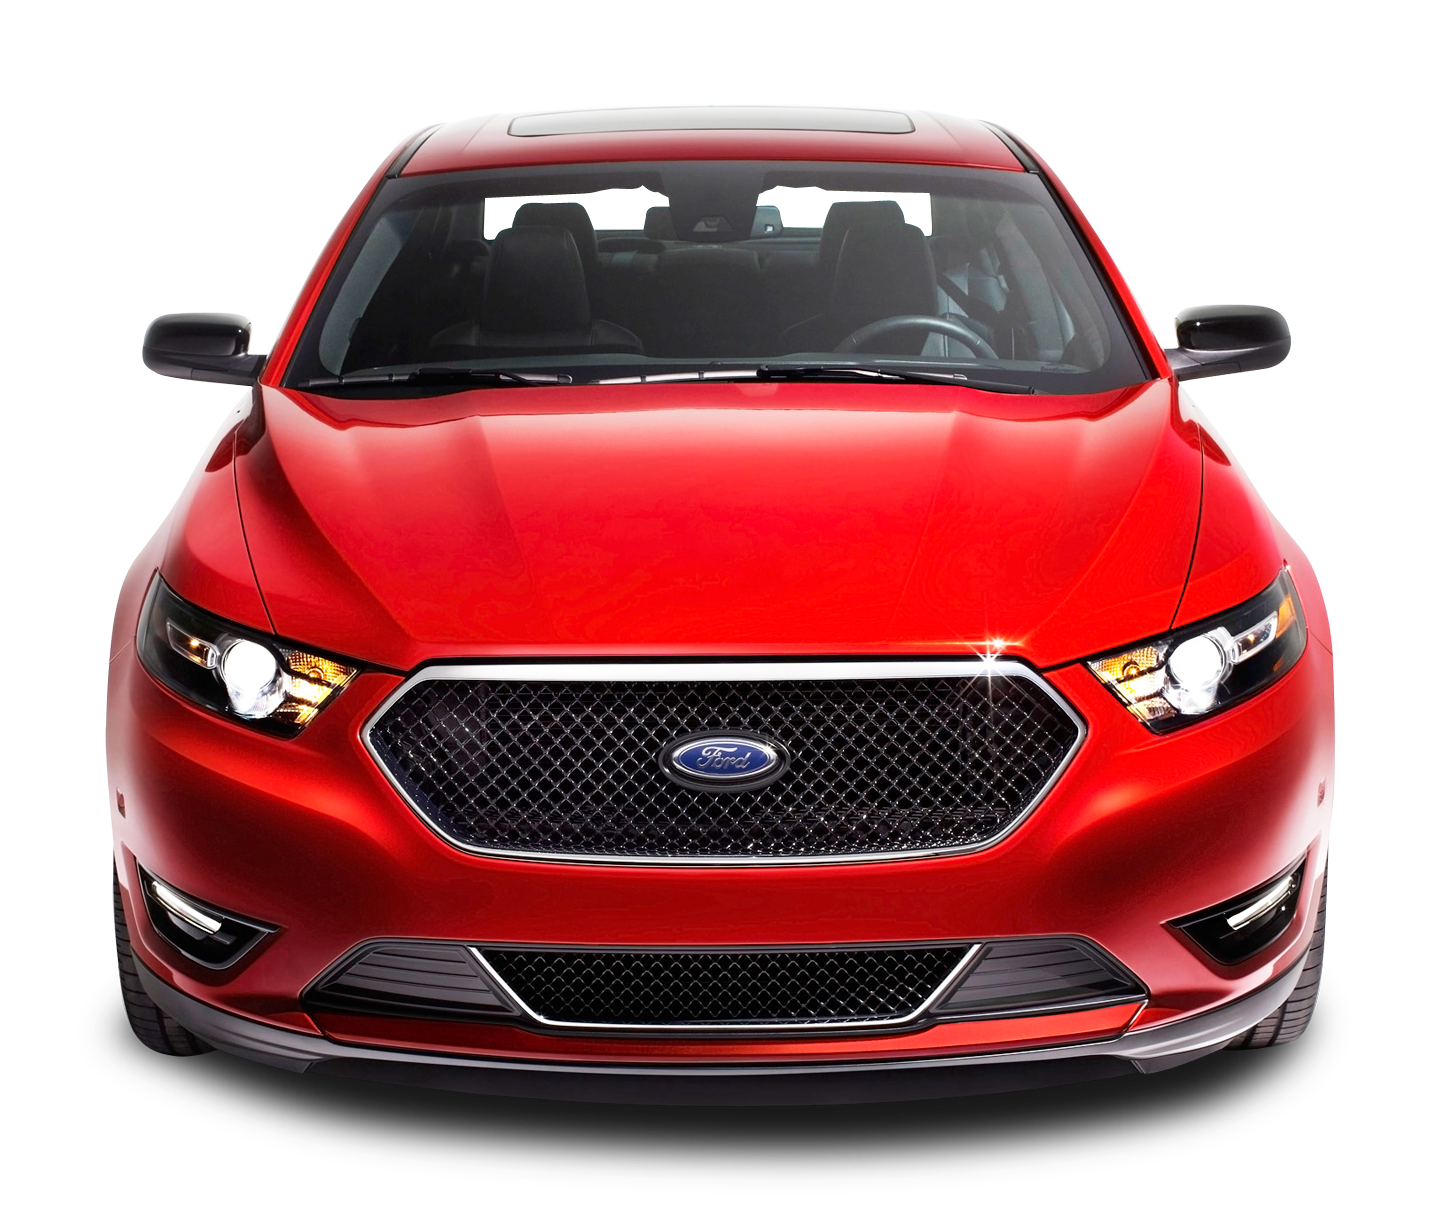 Car front png. Red ford taurus image